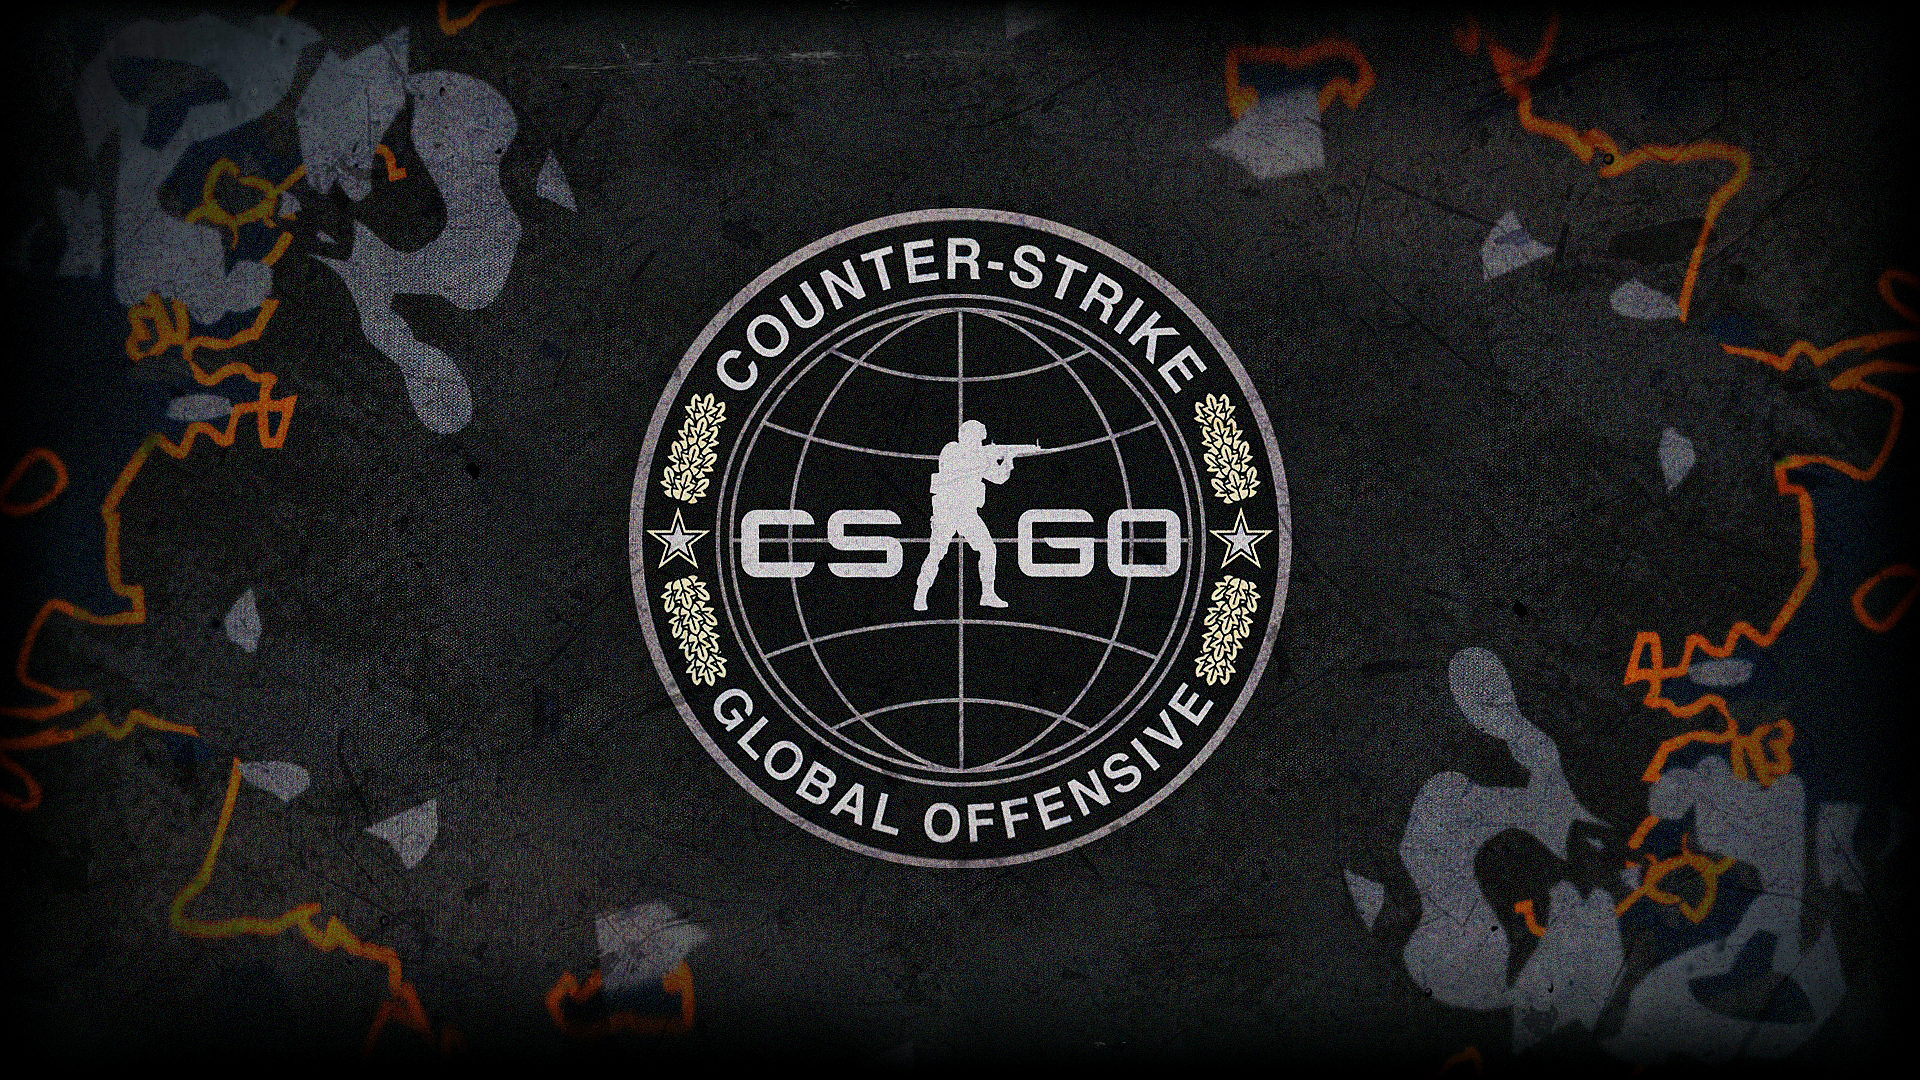 CSGO CAMO Steelseries